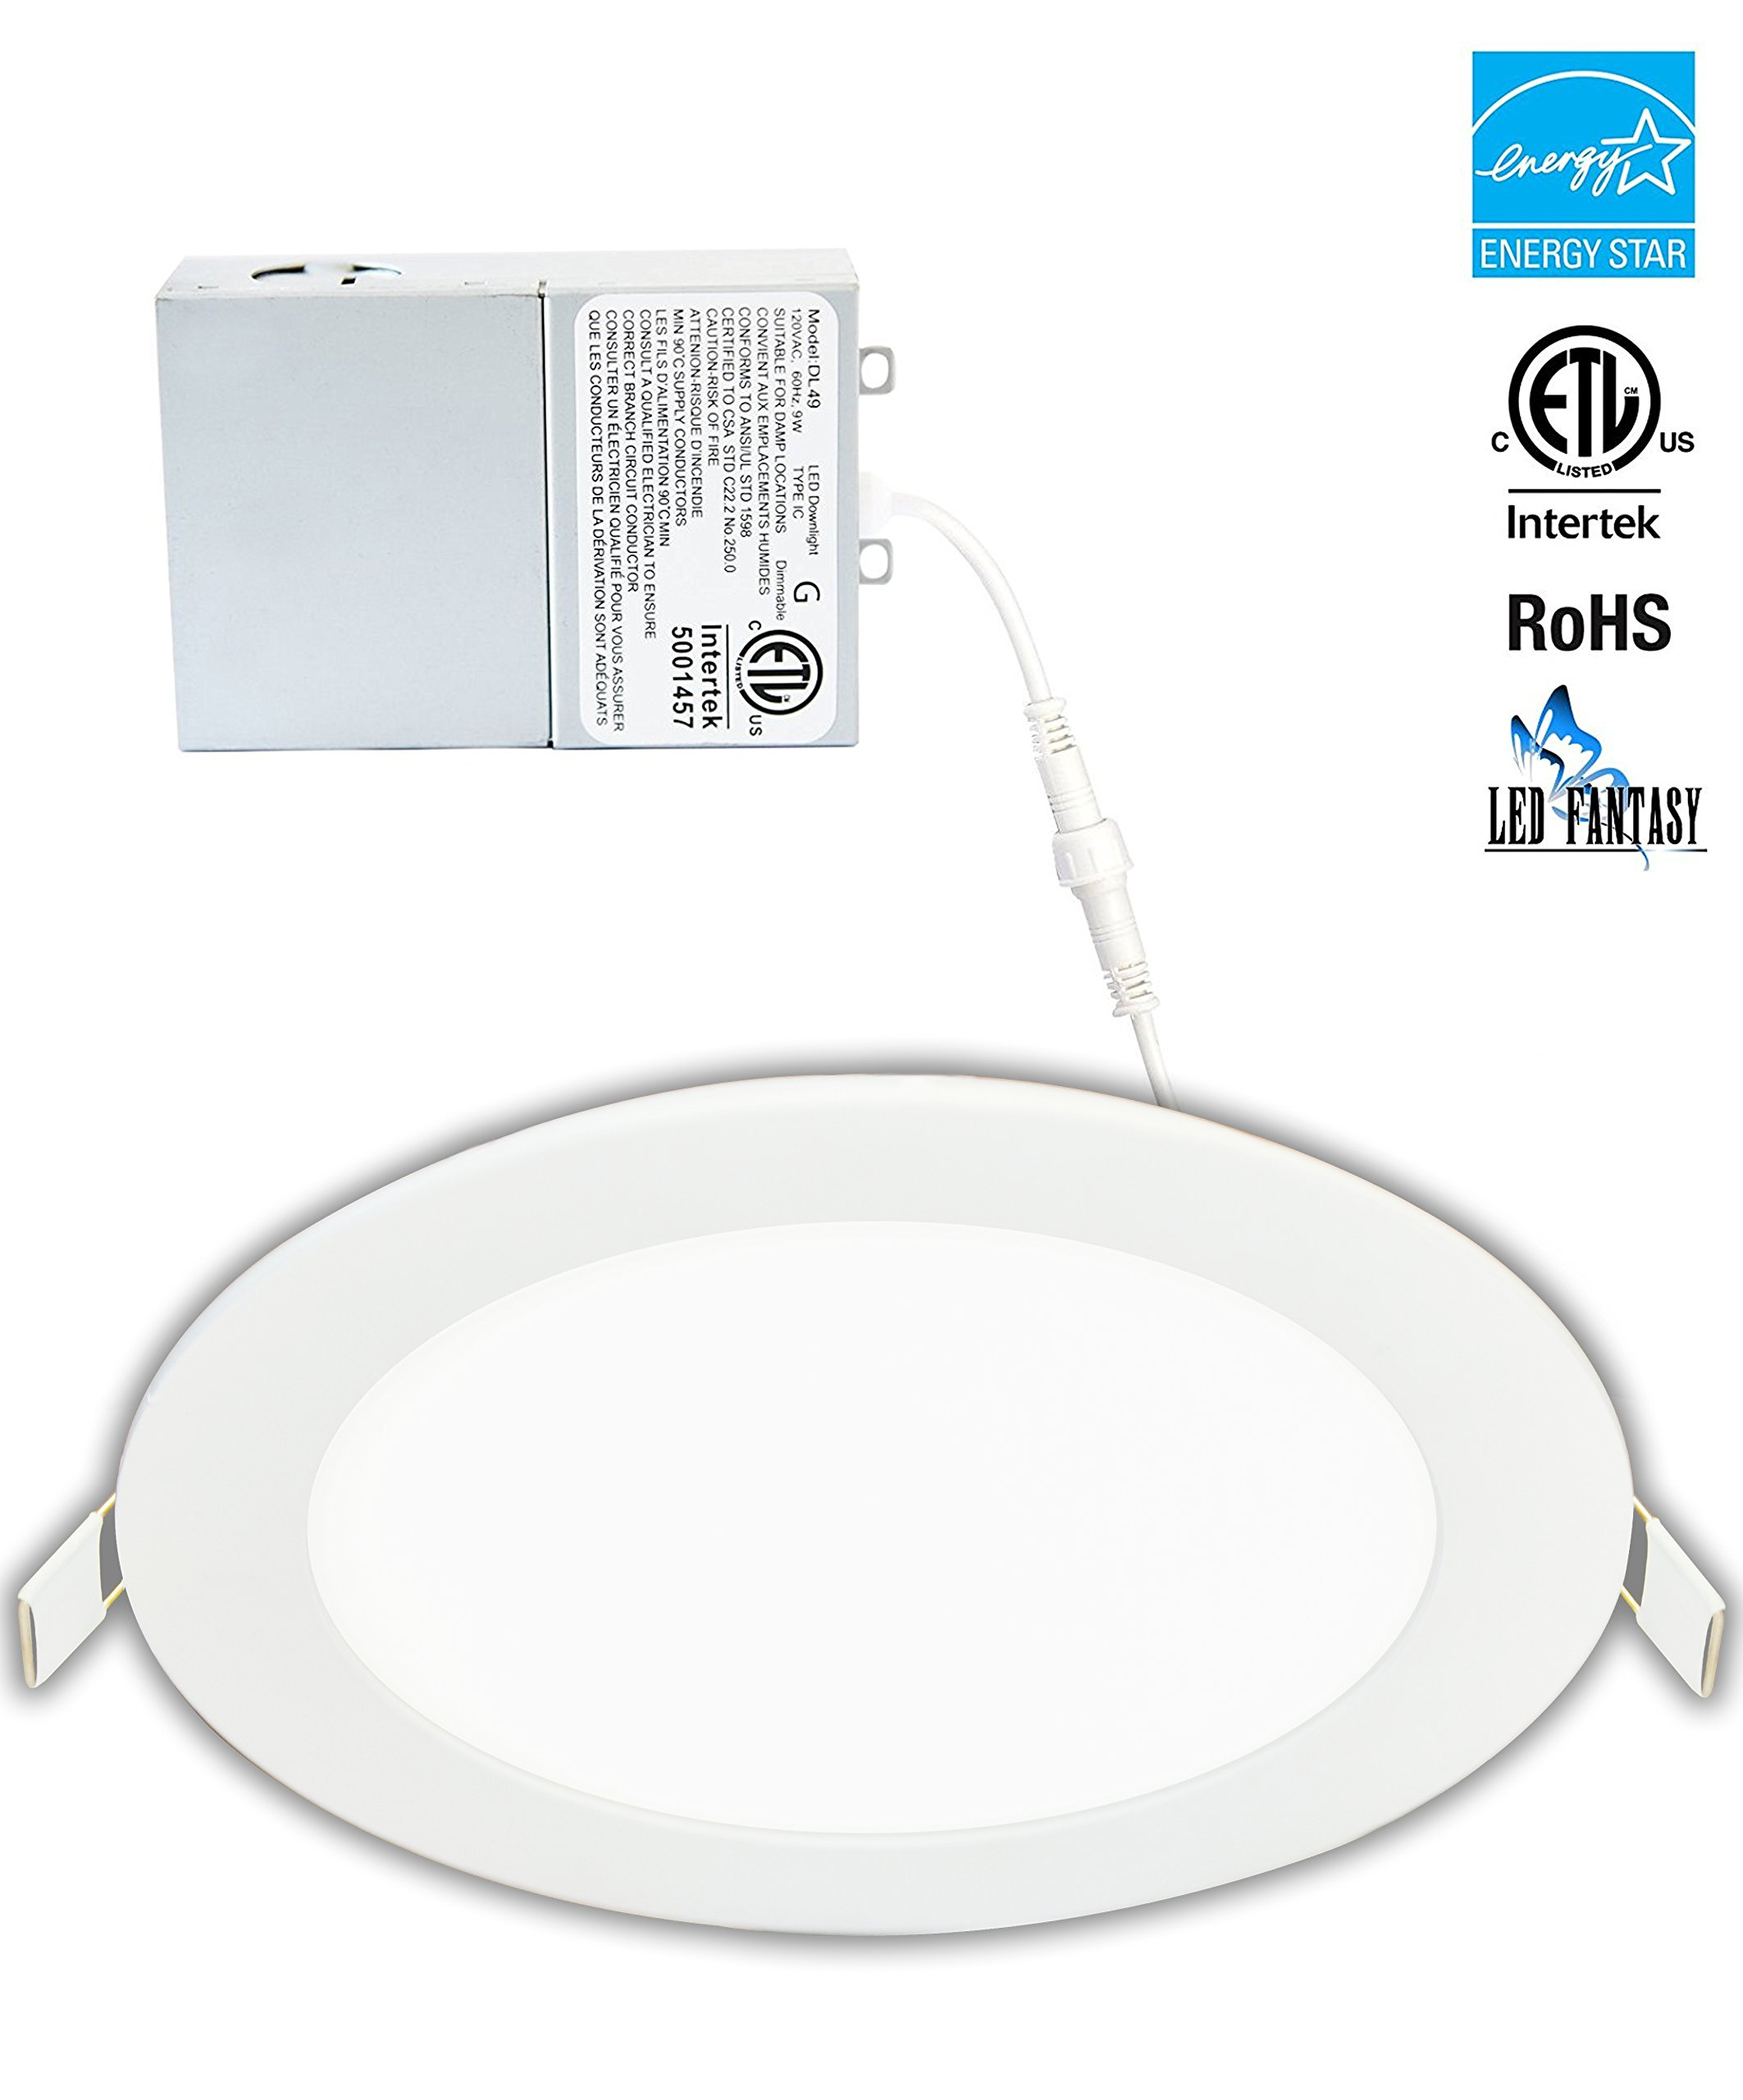 LED Fantasy 6-inch 15W 120V Recessed Ultra Thin Ceiling LED Light Retrofit Downlight Wafer Panel Slim IC Rated ETL Energy Star 1000 Lumens (Daylight 5000k, 1 Pack)